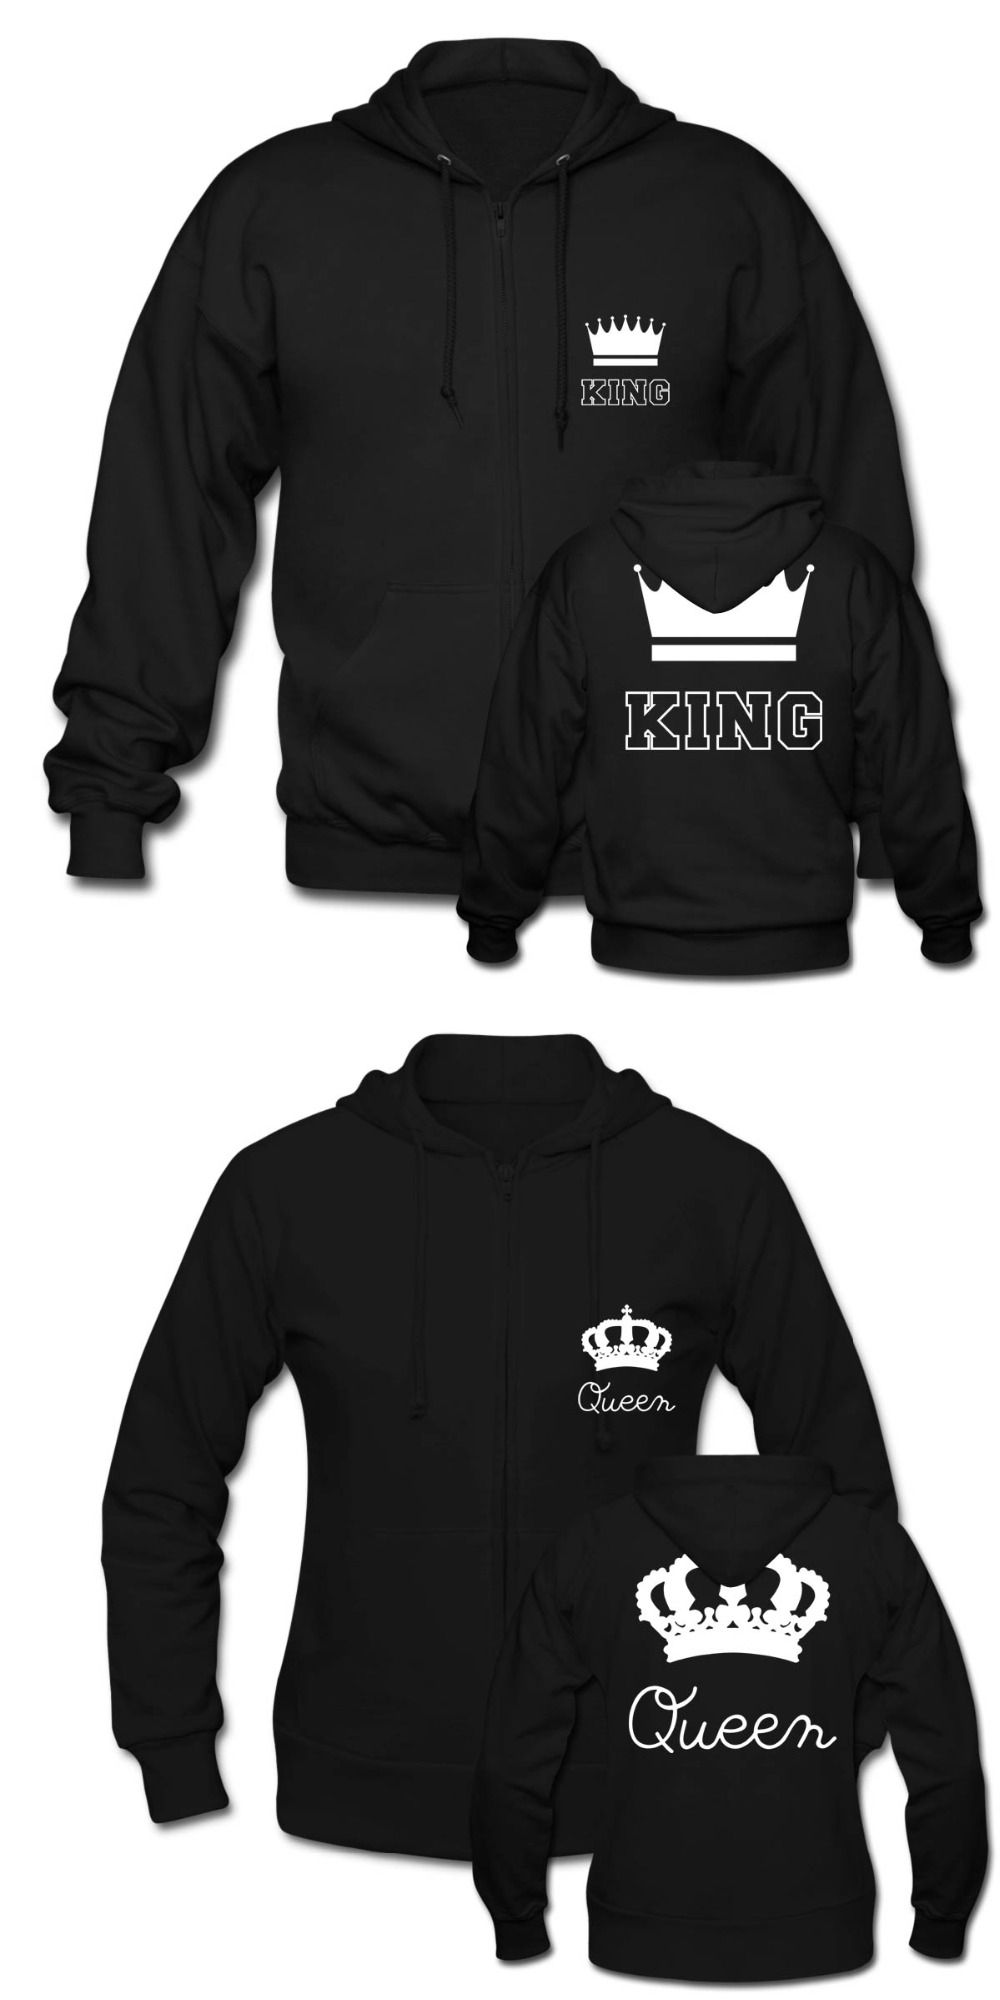 Cute Matching Couple Zip Hoodie Unisex King and Queen For Mens Womens  Cotton Sweatshirts Harajuku Hoodies · Couples AssortisCapuche ZippéHarajukuSweats  À ...